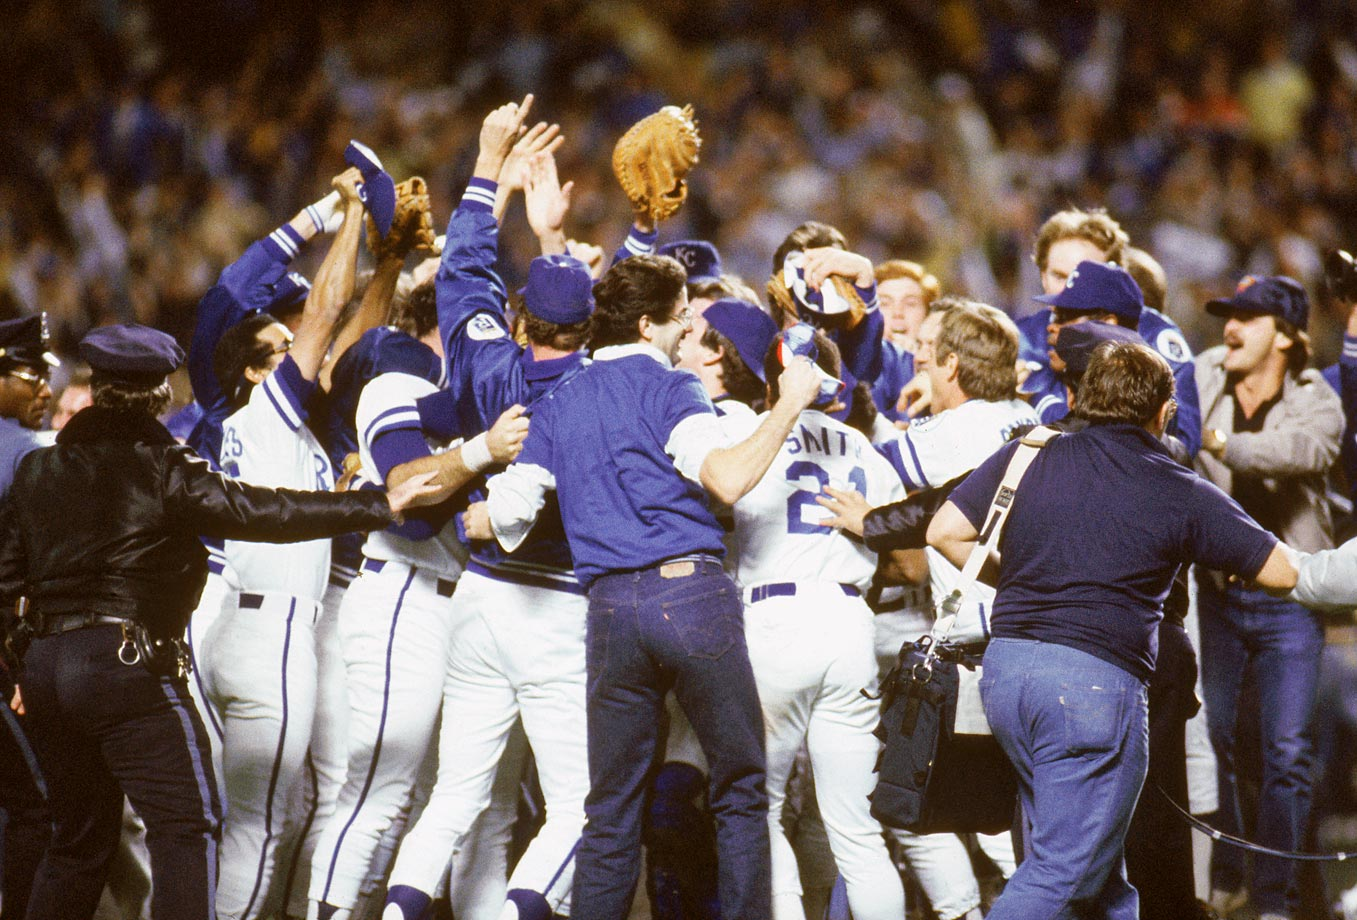 The Royals celebrate winning the World Series after overcoming a 3-1 series deficit.